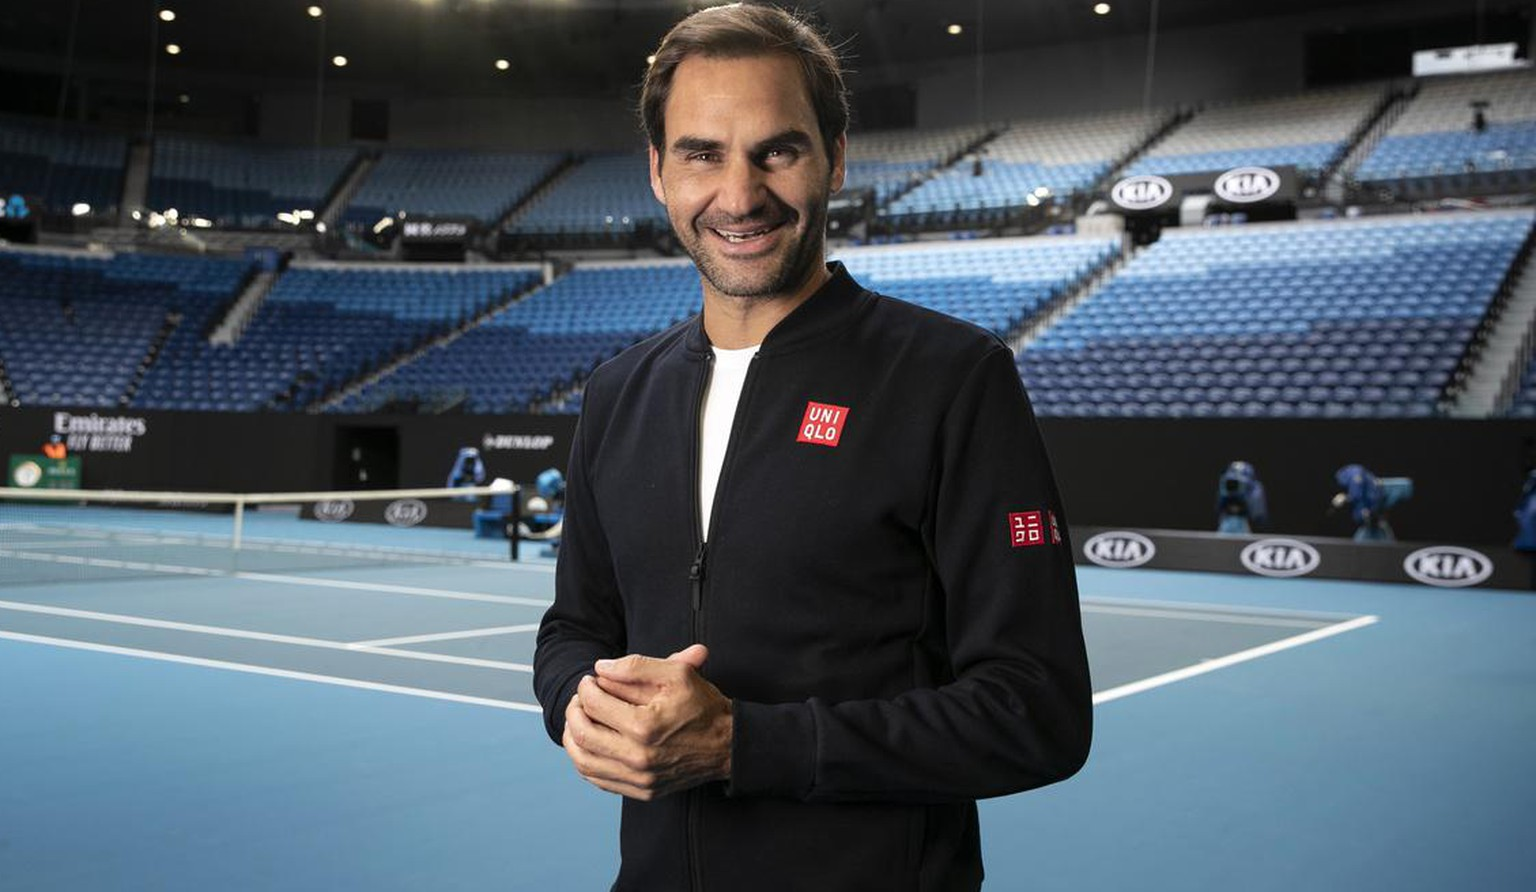 epa08118871 A handout photo made available by Tennis Australia shows Roger Federer of Switzerland posing for a photo during a practice session ahead of the Australian Open tennis tournament at Rod Laver Arena in Melbourne, Victoria, Australia, 11 January 2020. The Australian Open 2020 will take place at Melbourne Park from 20 January to 02 February. EPA/FIONA HAMILTON/TENNIS AUSTRALIA HANDOUT AUSTRALIA AND NEW ZEALAND OUT HANDOUT EDITORIAL USE ONLY/NO SALES